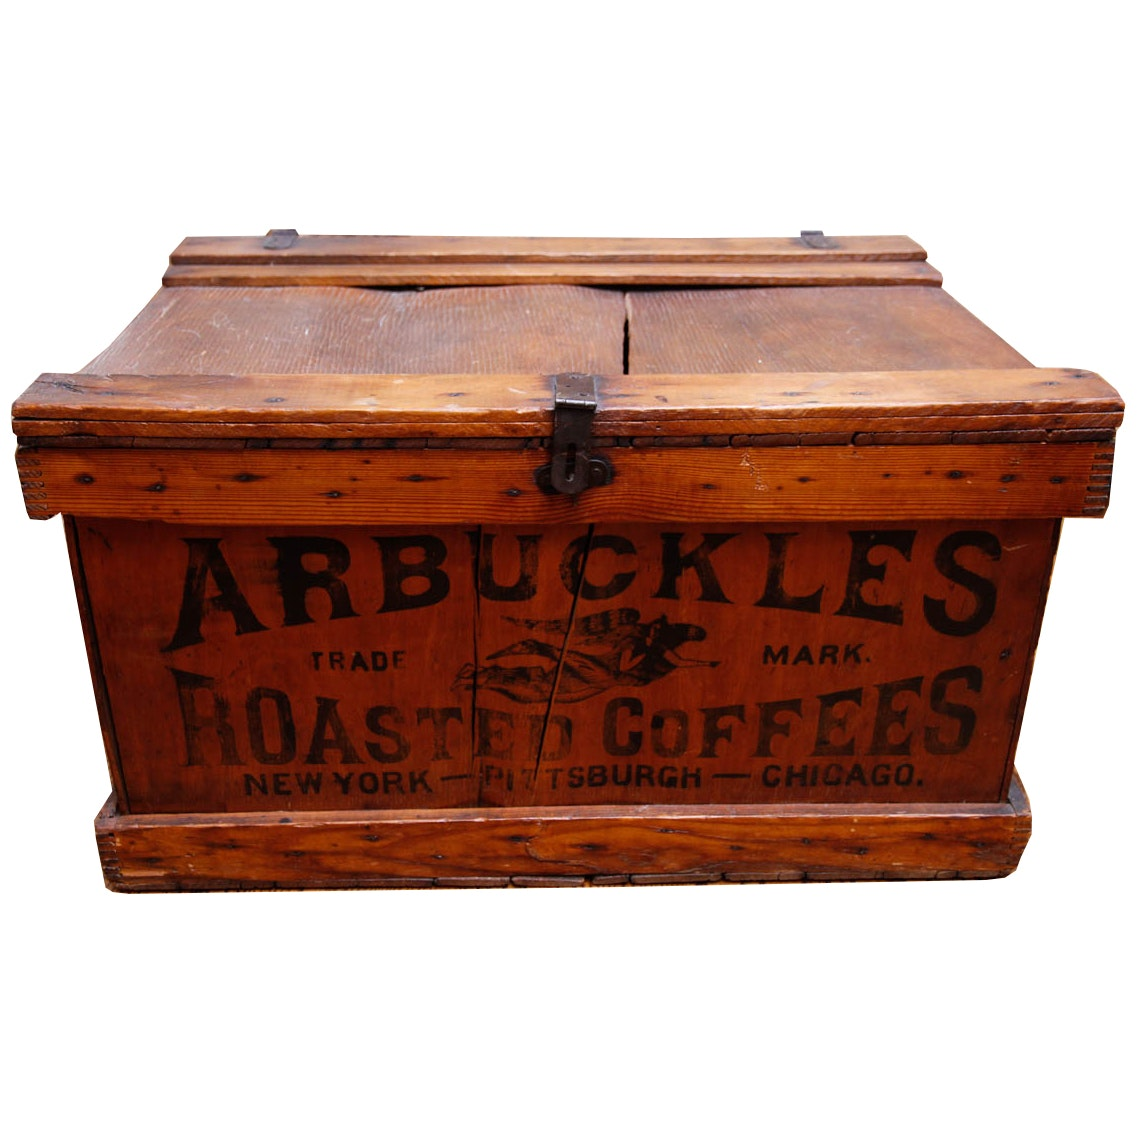 Arbuckles Roasted Coffees Wooden Trunk